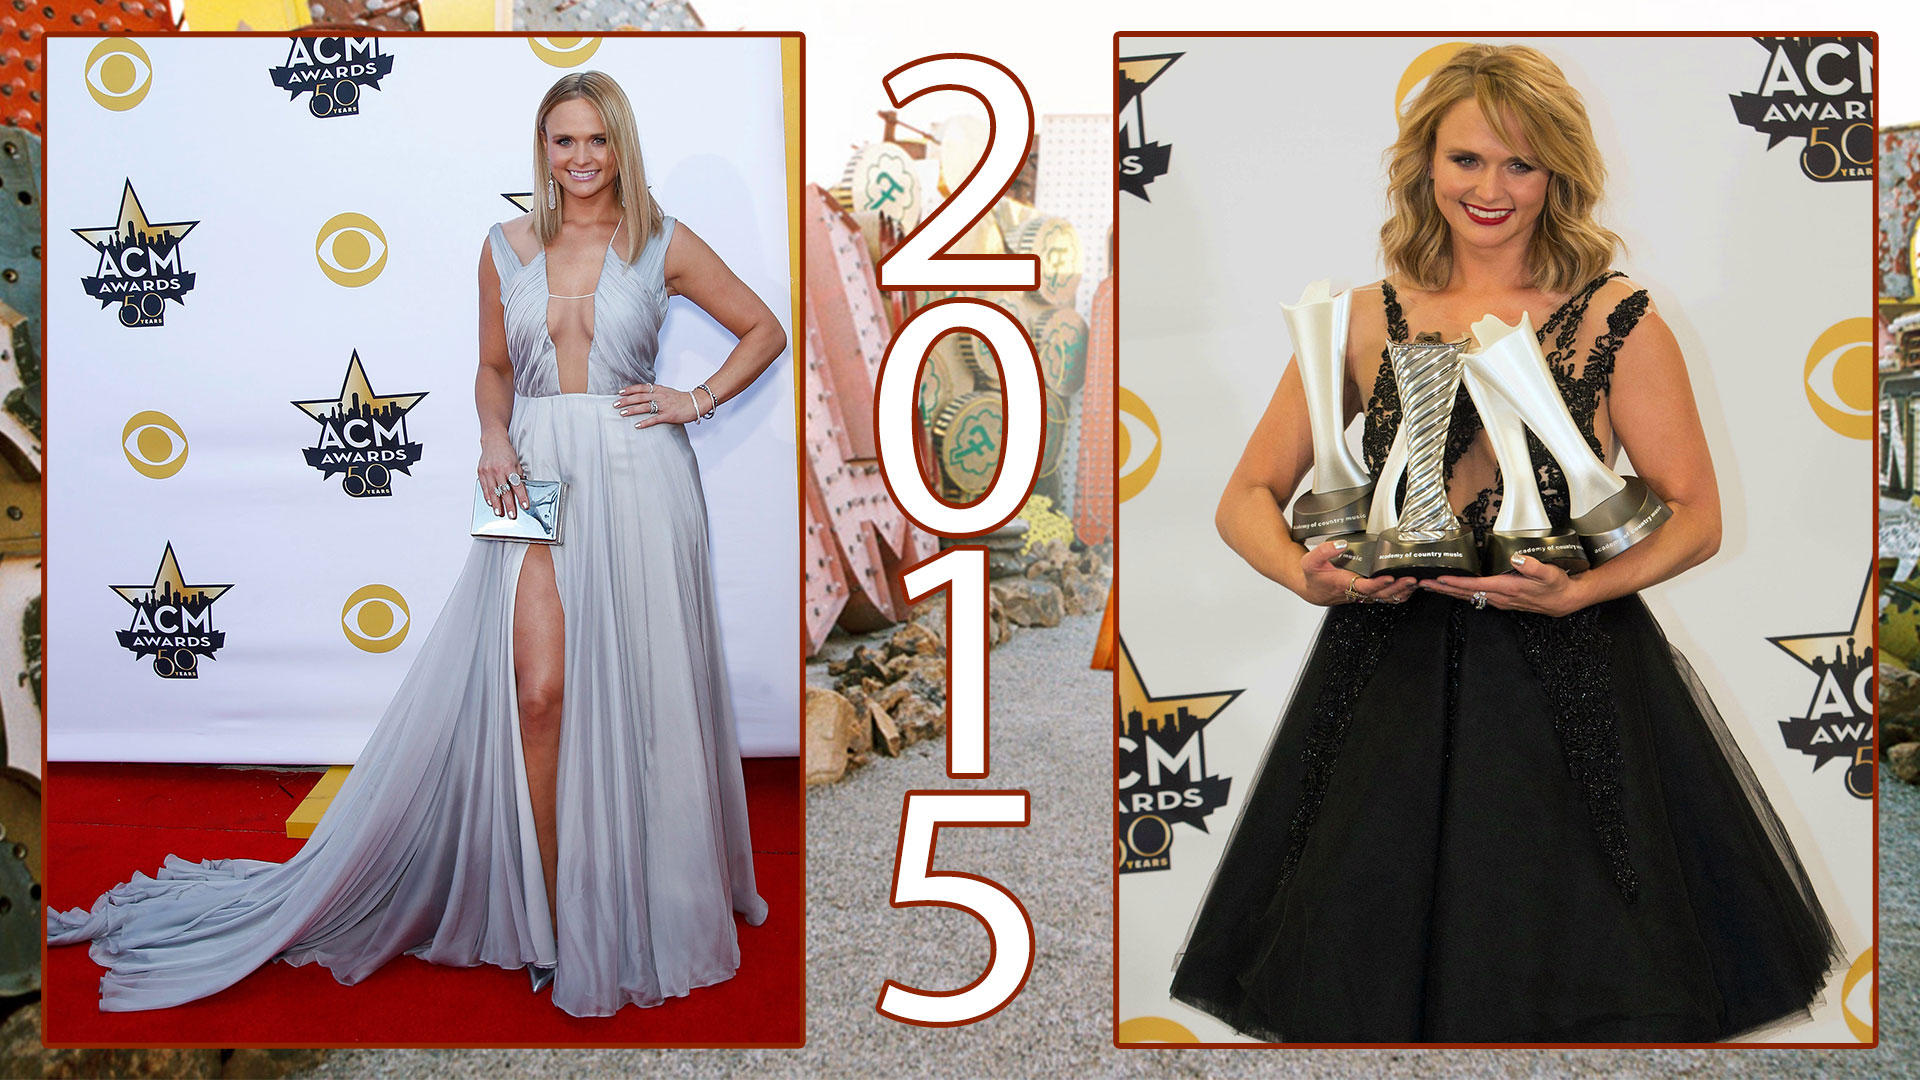 In 2015, Miranda proved platinum goes with everything.